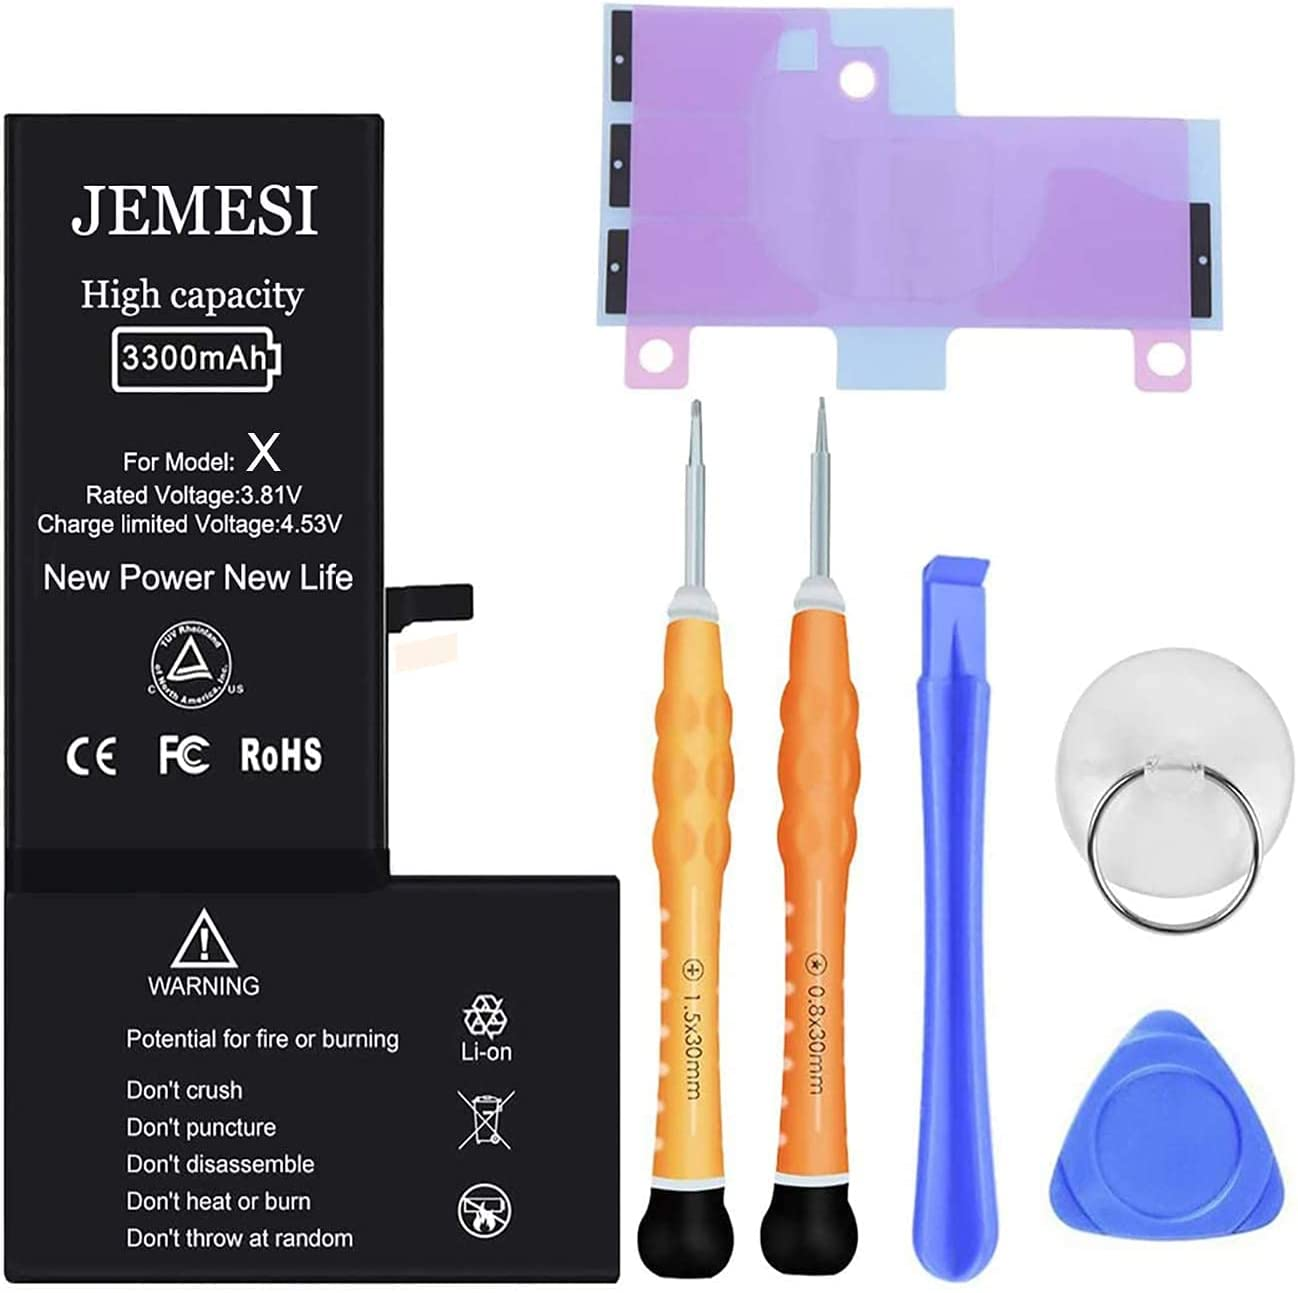 JEMESI New Battery for iPhone X, 3300mAh Ultra High Capacity Battery Replacement Kit, with Professional Repair Tools and Instructions-1 Year Warranty